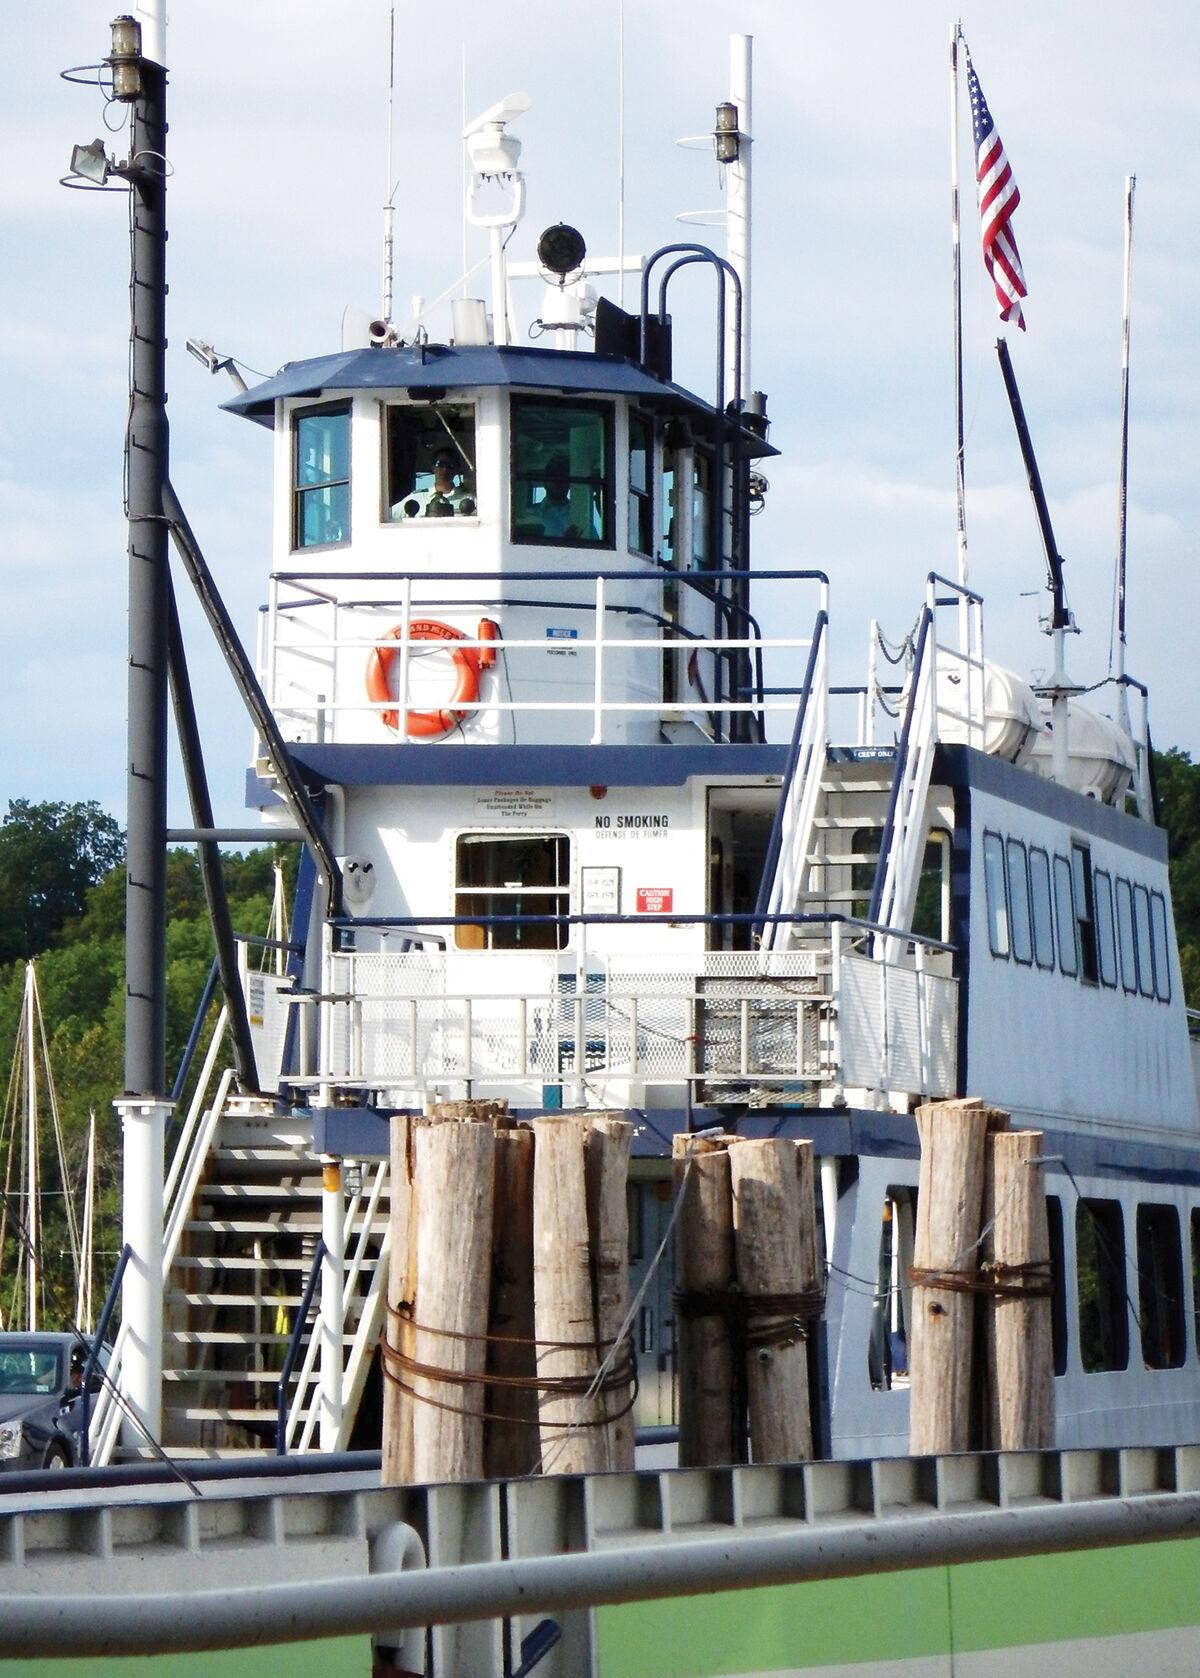 Charlotte-Essex Ferry has been suspended by Lake Champlain Transportation